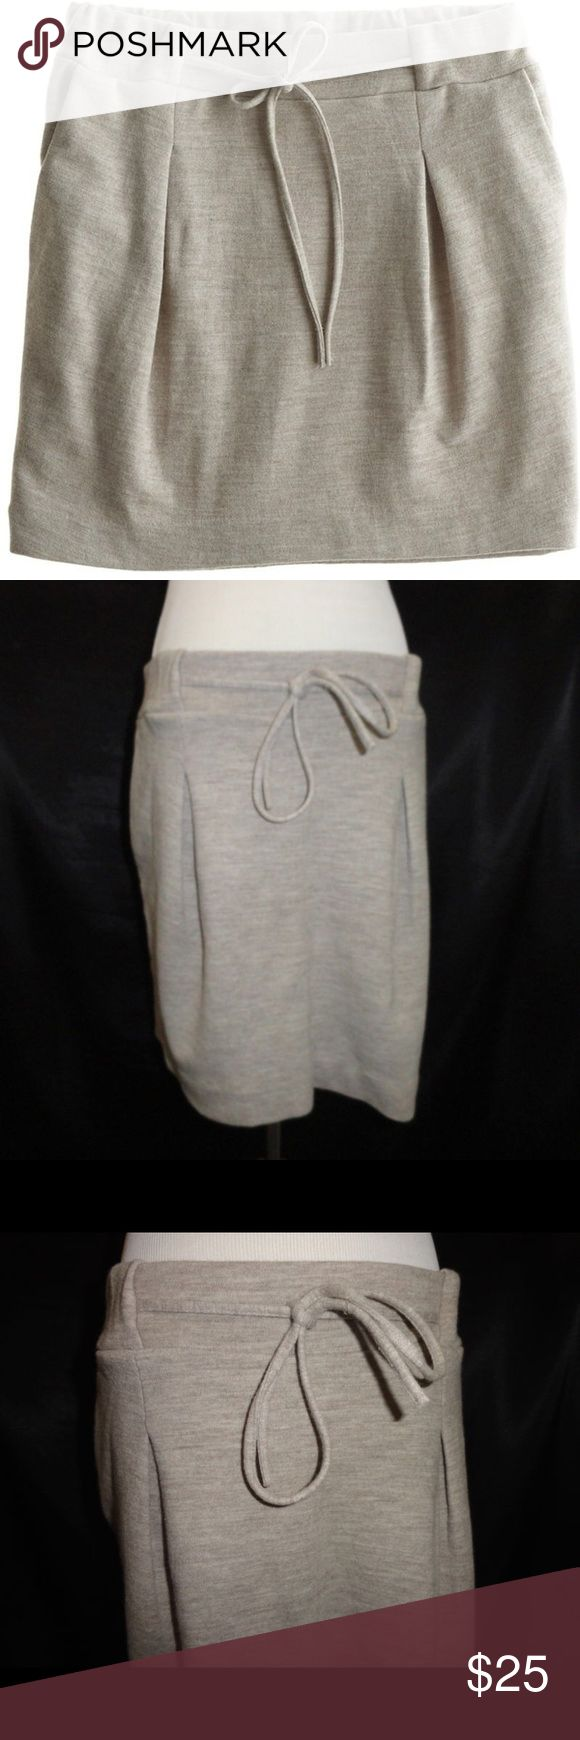 Calypso egg pleat gray wool miniskirt NWOT Great for cooler weather, would look fantastic with tights and tall boots or booties. Calypso St. Barth Skirts Mini